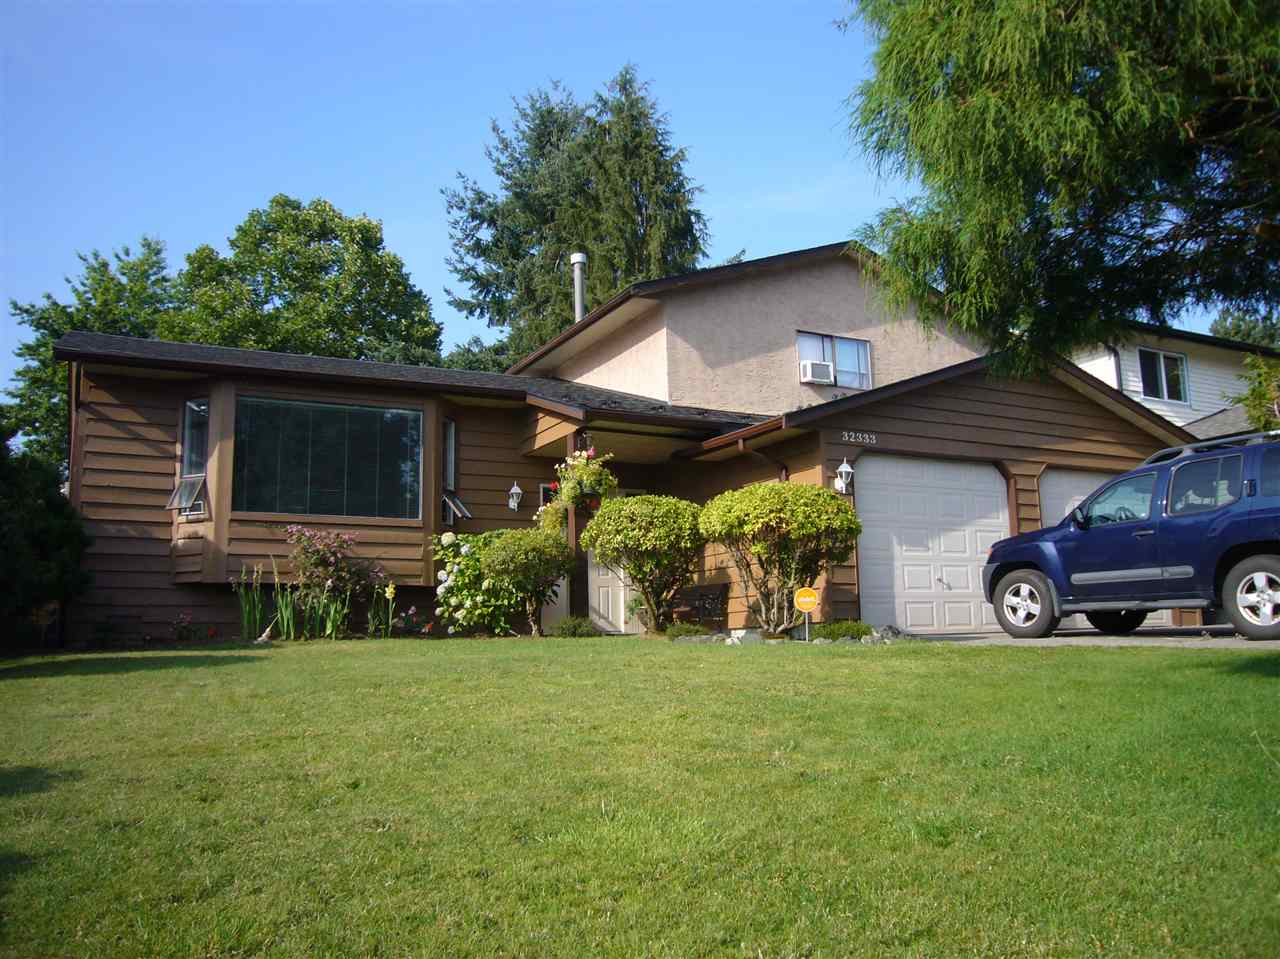 Main Photo: 32333 BEAVER Drive in Mission: Mission BC House for sale : MLS® # R2197503